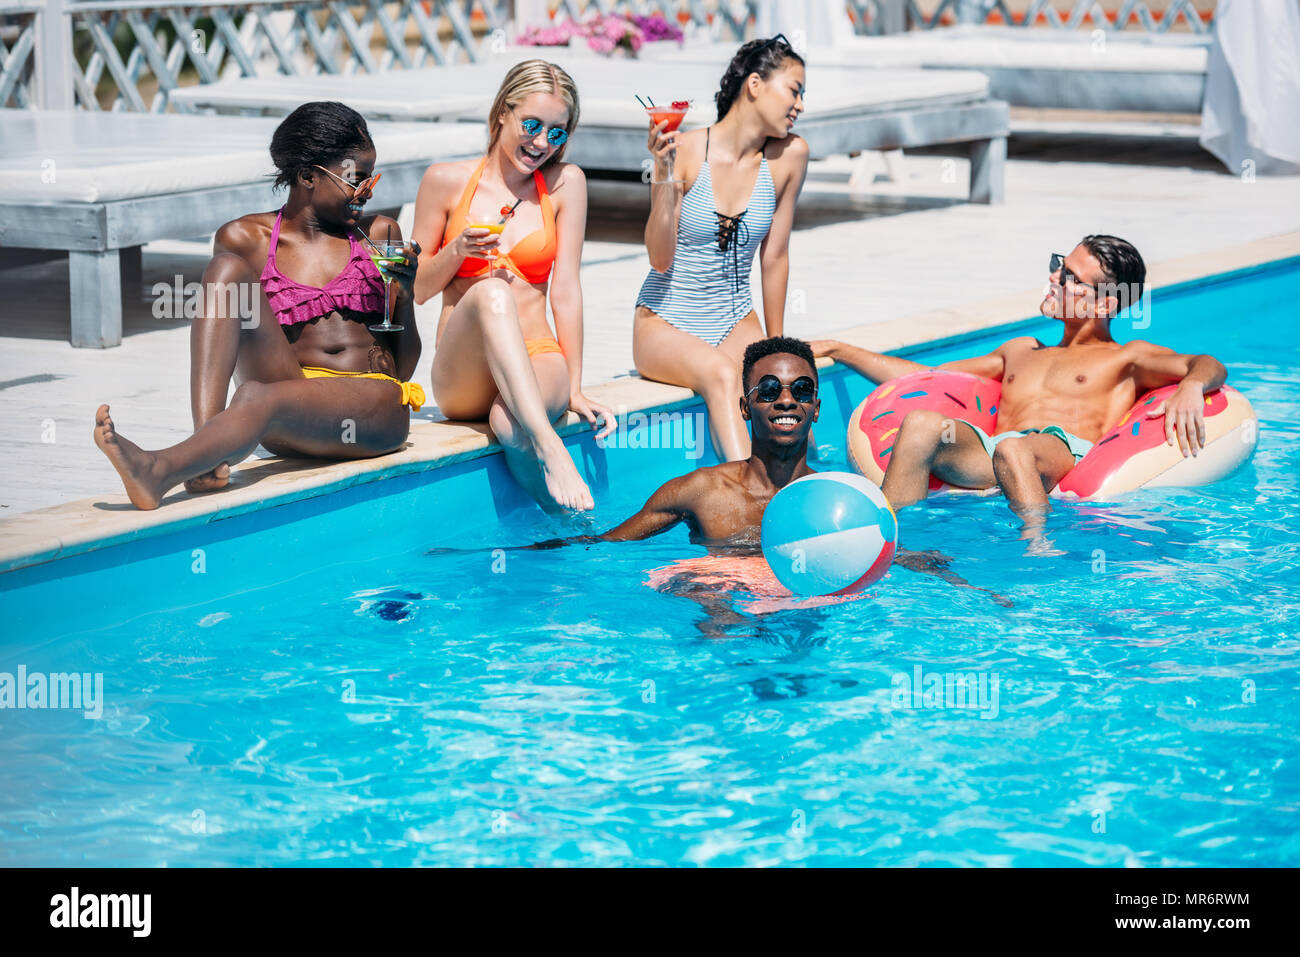 Group of young happy multiethnic people having fun together in swimming pool - Stock Image